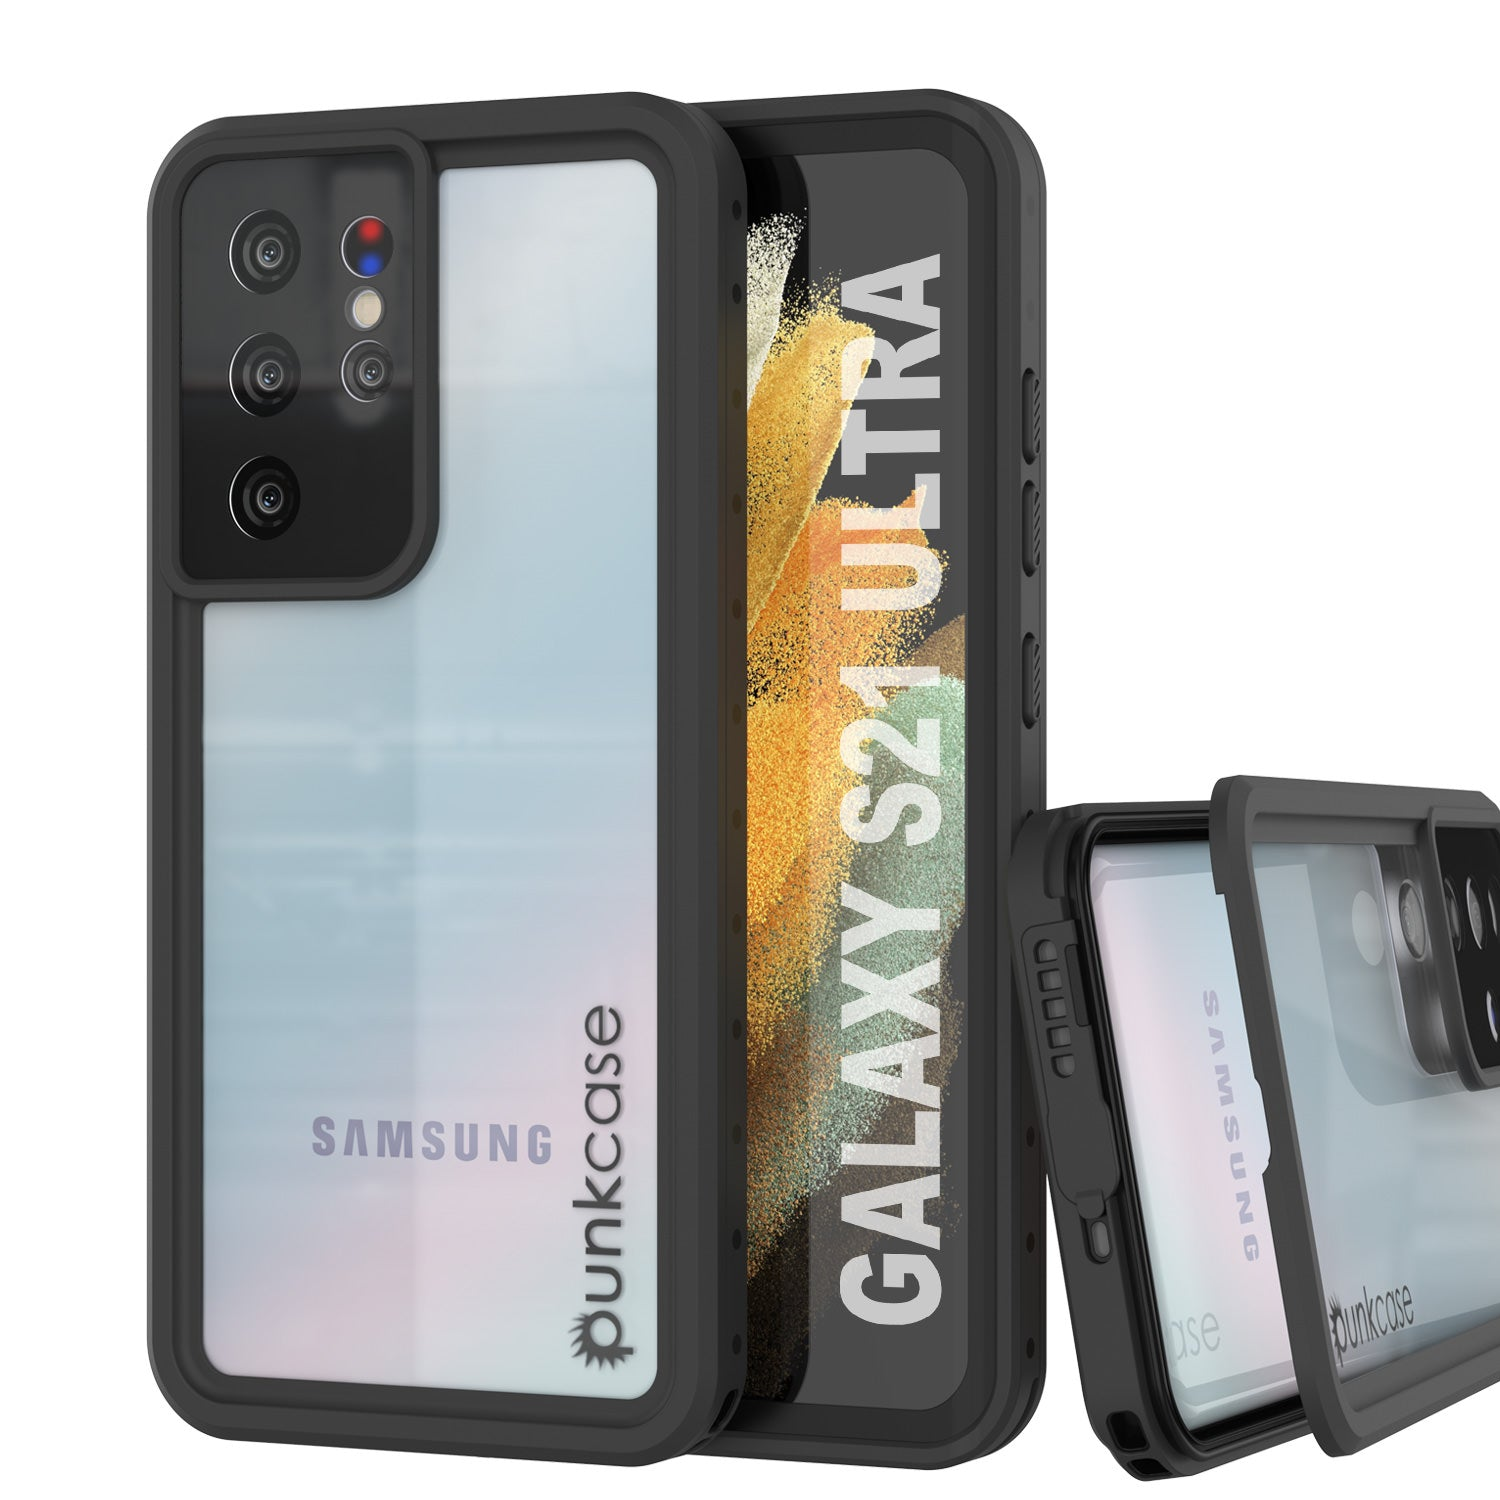 Galaxy S21 Ultra Waterproof Case PunkCase StudStar Clear Thin 6.6ft Underwater IP68 Shock/Snow Proof